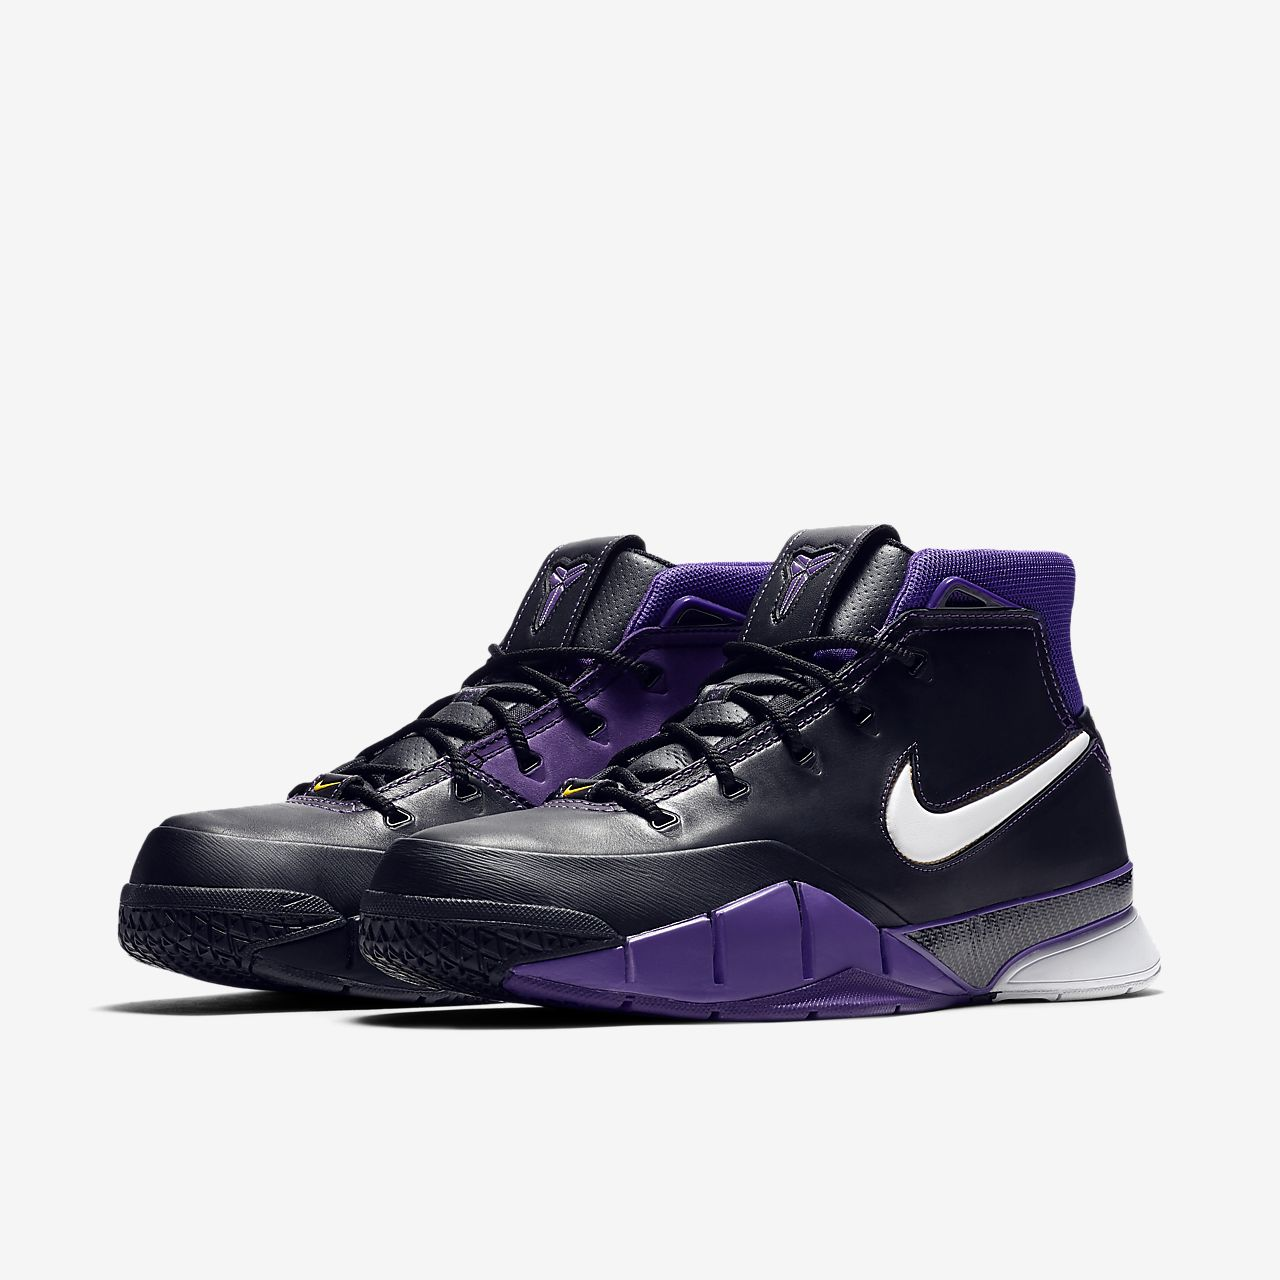 new concept d32f1 97eb1 ... Kobe 1 Protro Basketball Shoe